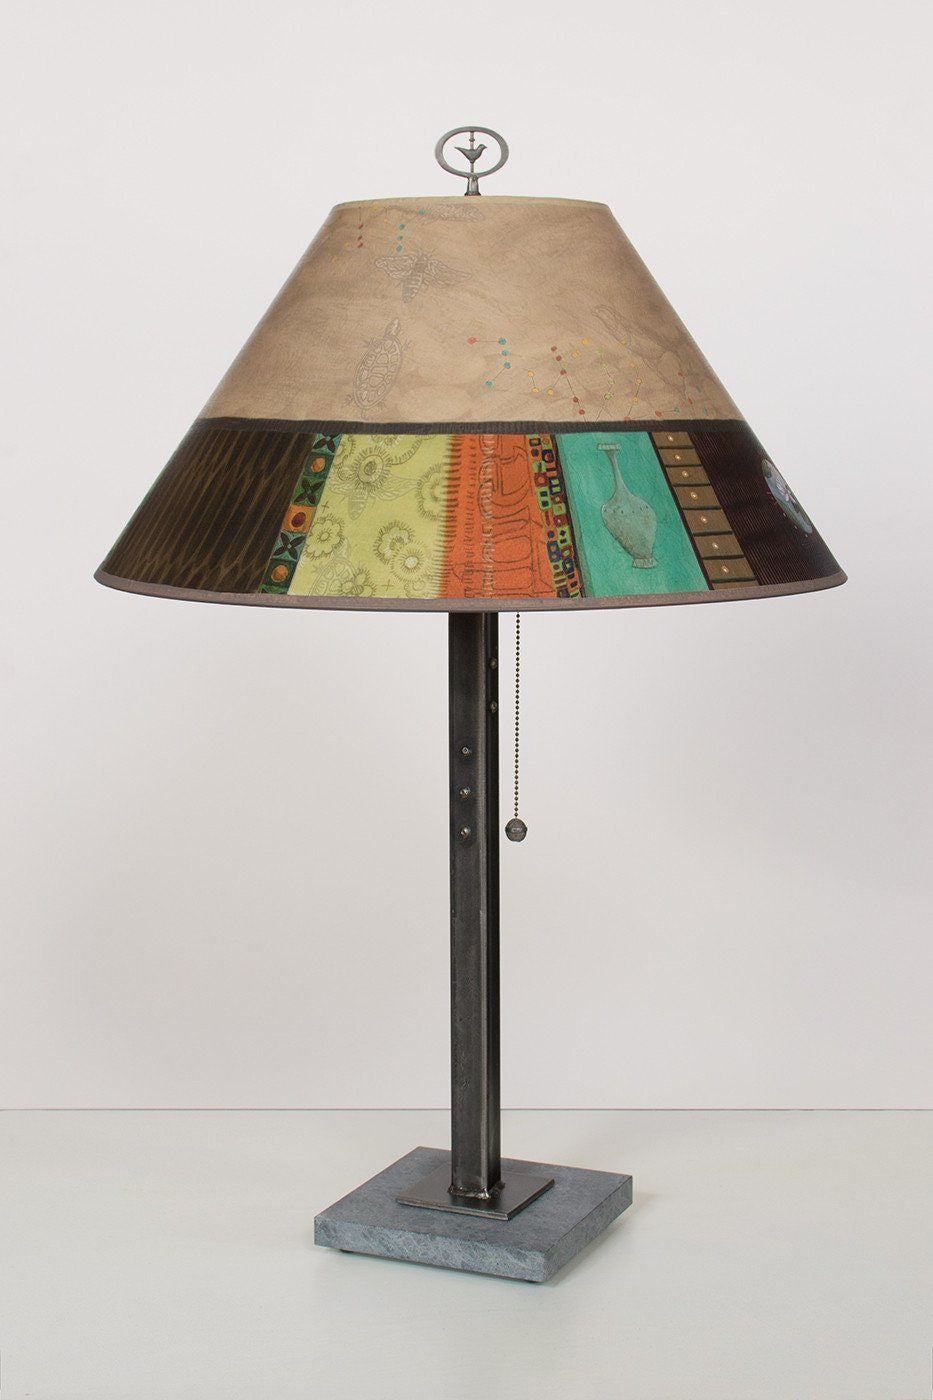 Steel Table Lamp on Italian Marble with Large Conical Shade in Linen Match